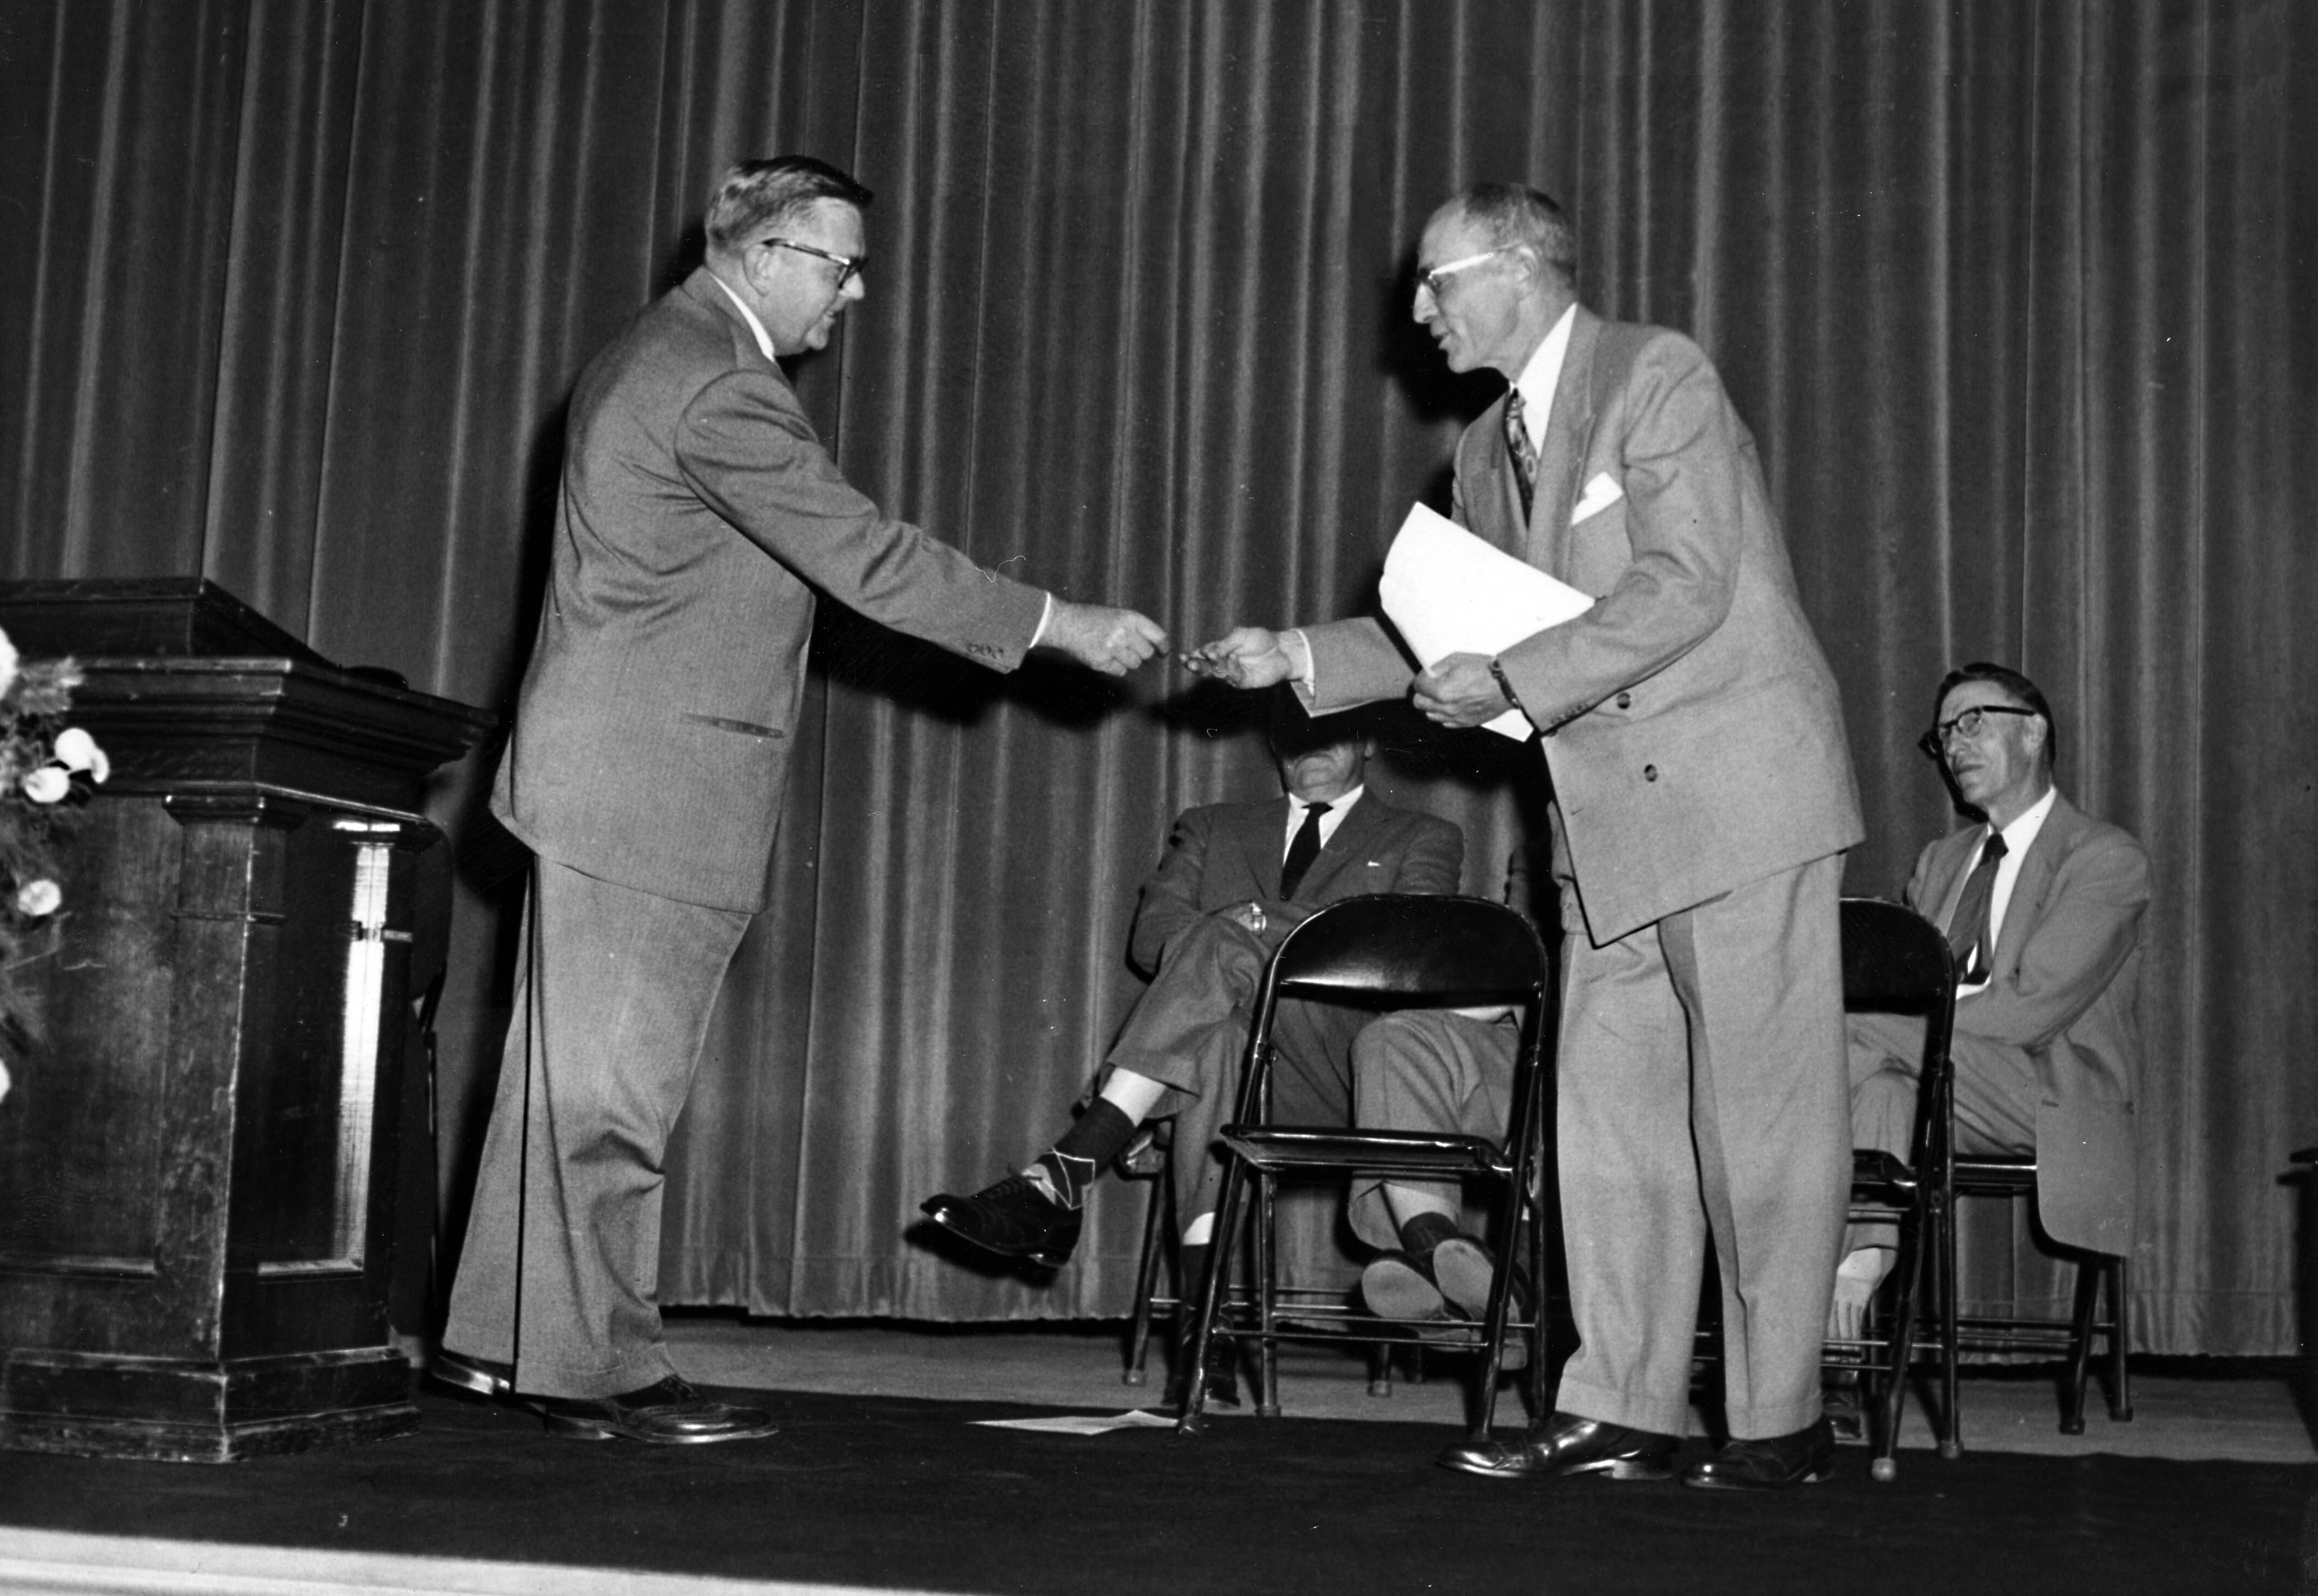 Wilbur Holes (right) accepts the keys to Kiehle, 1953